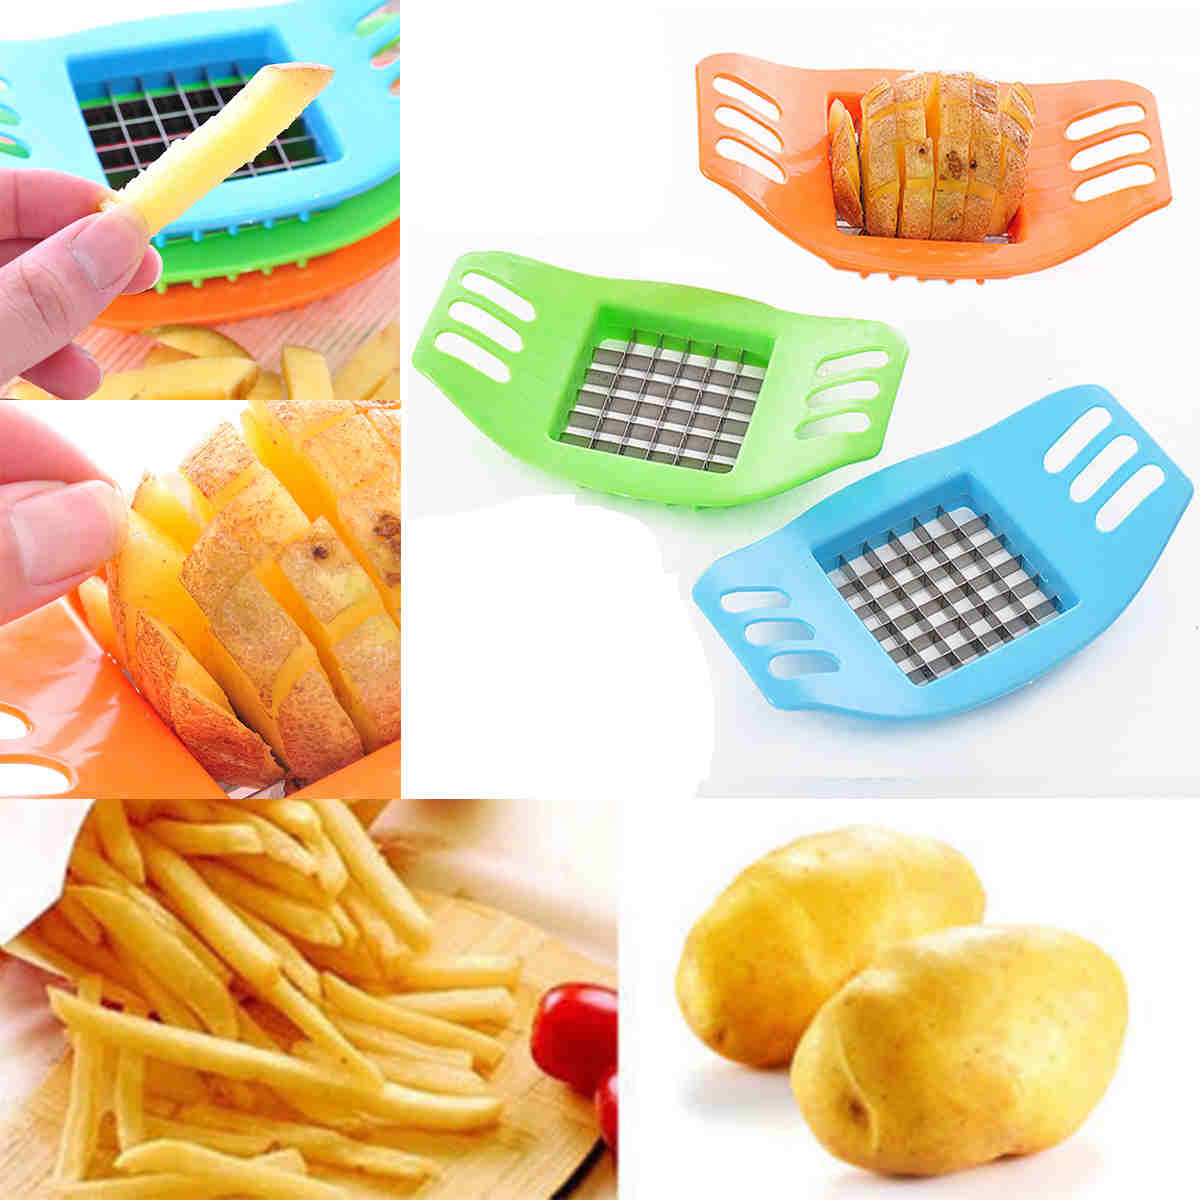 1pcs Vegetable Potato Cutter Slicer Chopper Chips Making Device Fries Stainless Steel Kitchen Cooking Tools Random 17x10x2cm